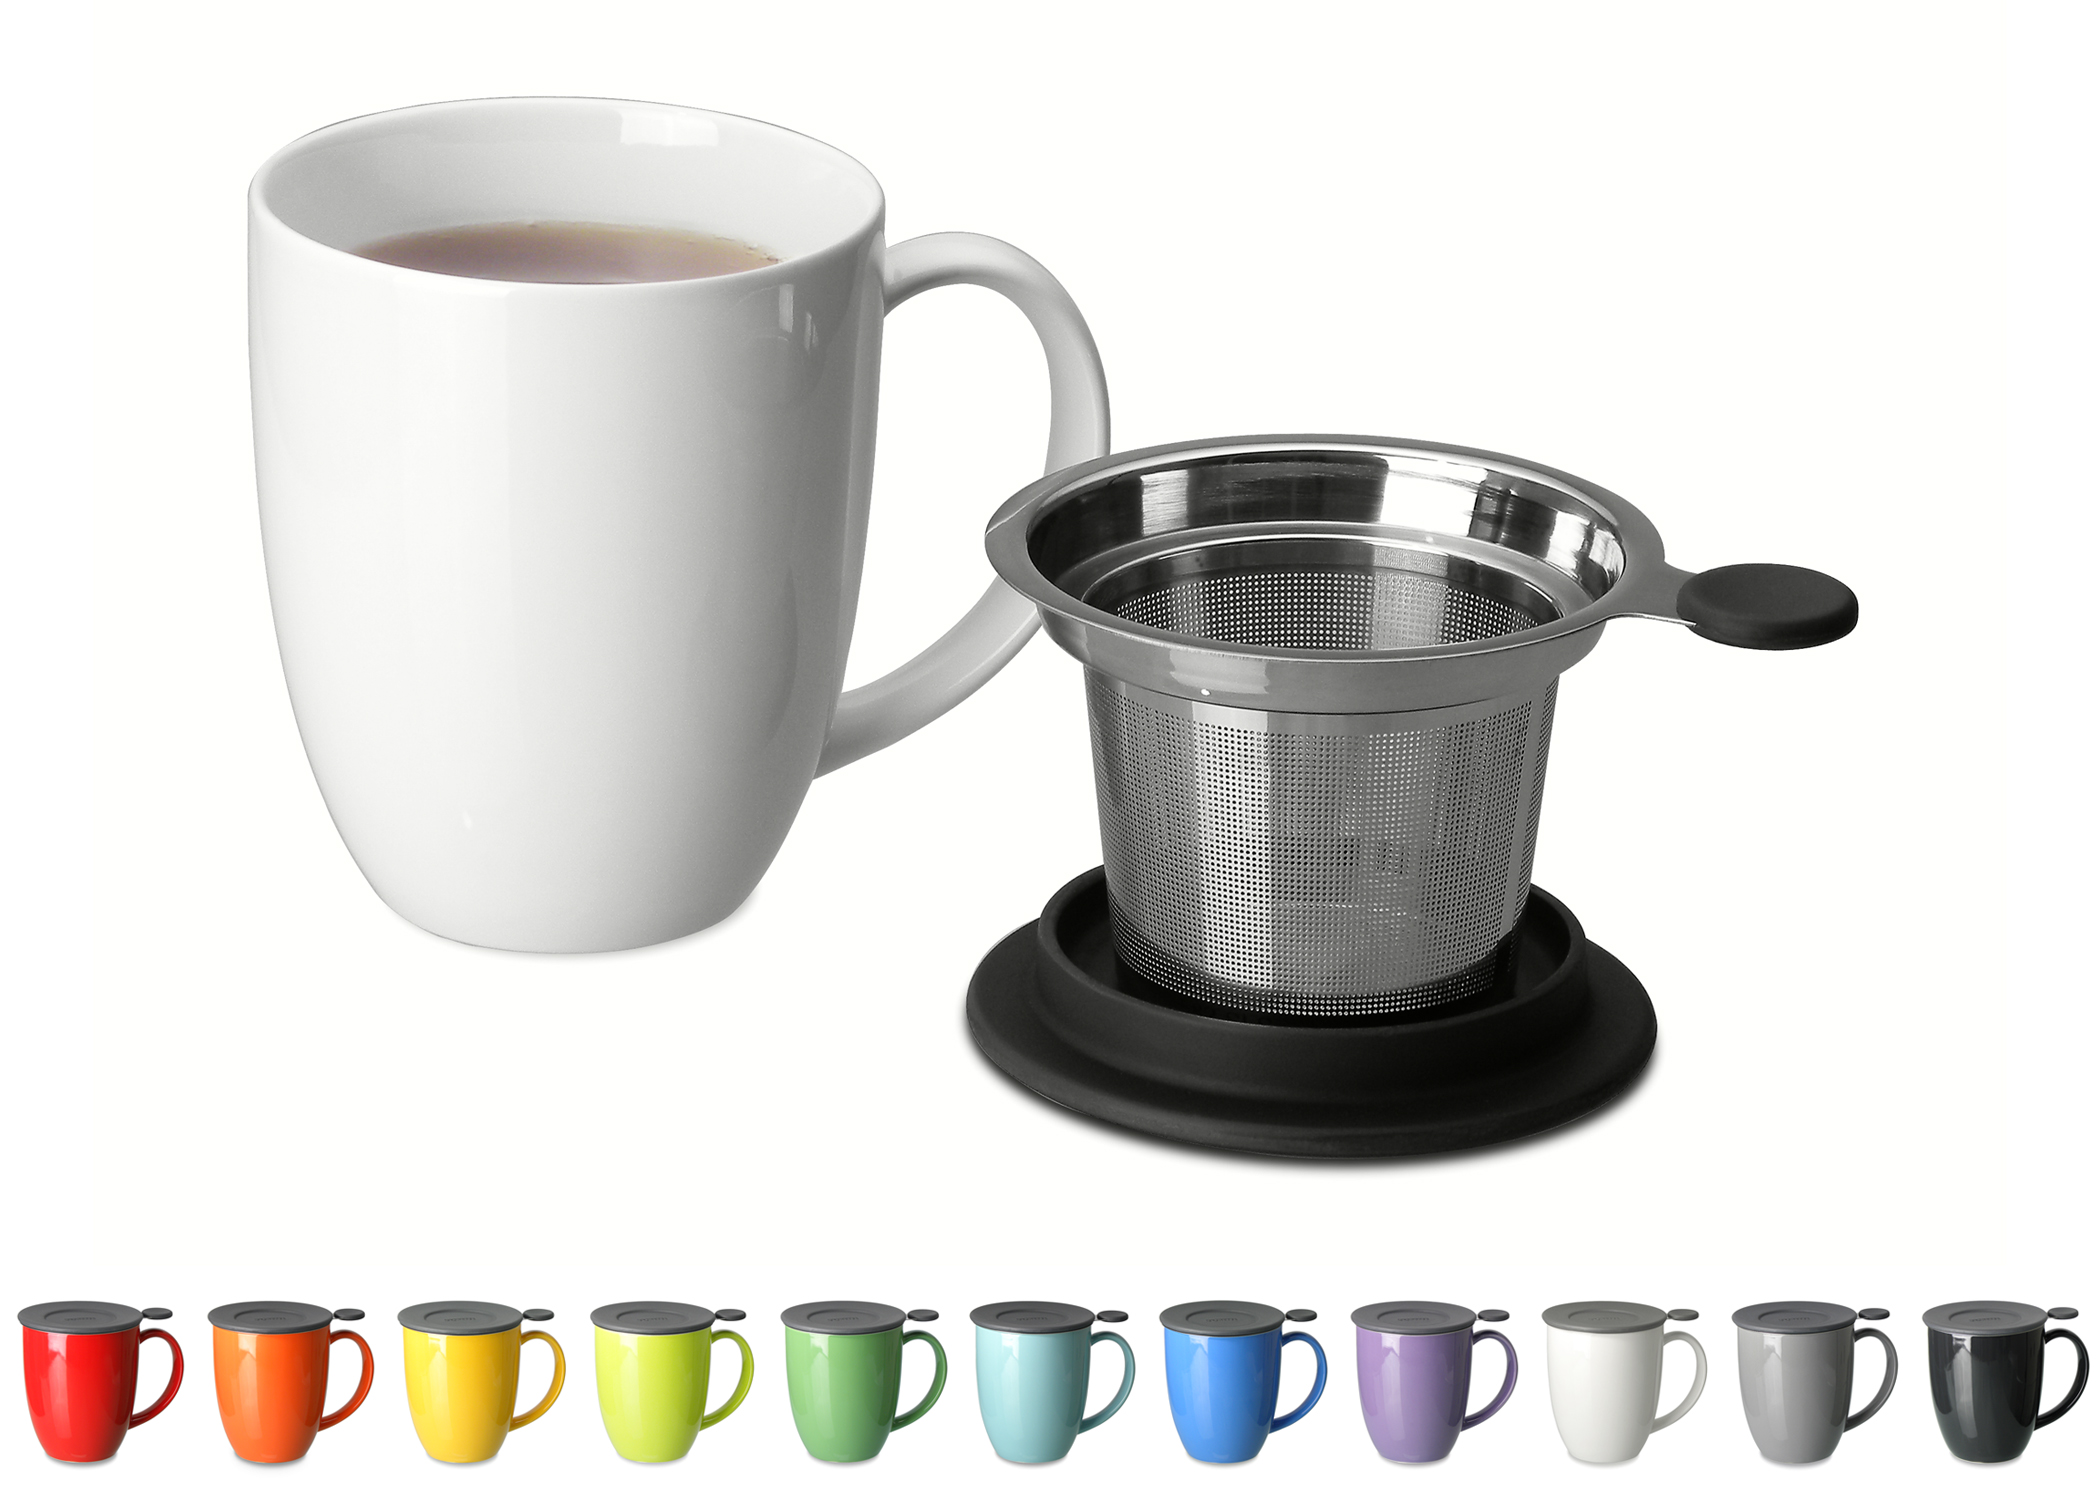 Uni Brew In Mug Makes Single Serve Tea Easy Kitchenware News Amp Housewares Reviewkitchenware